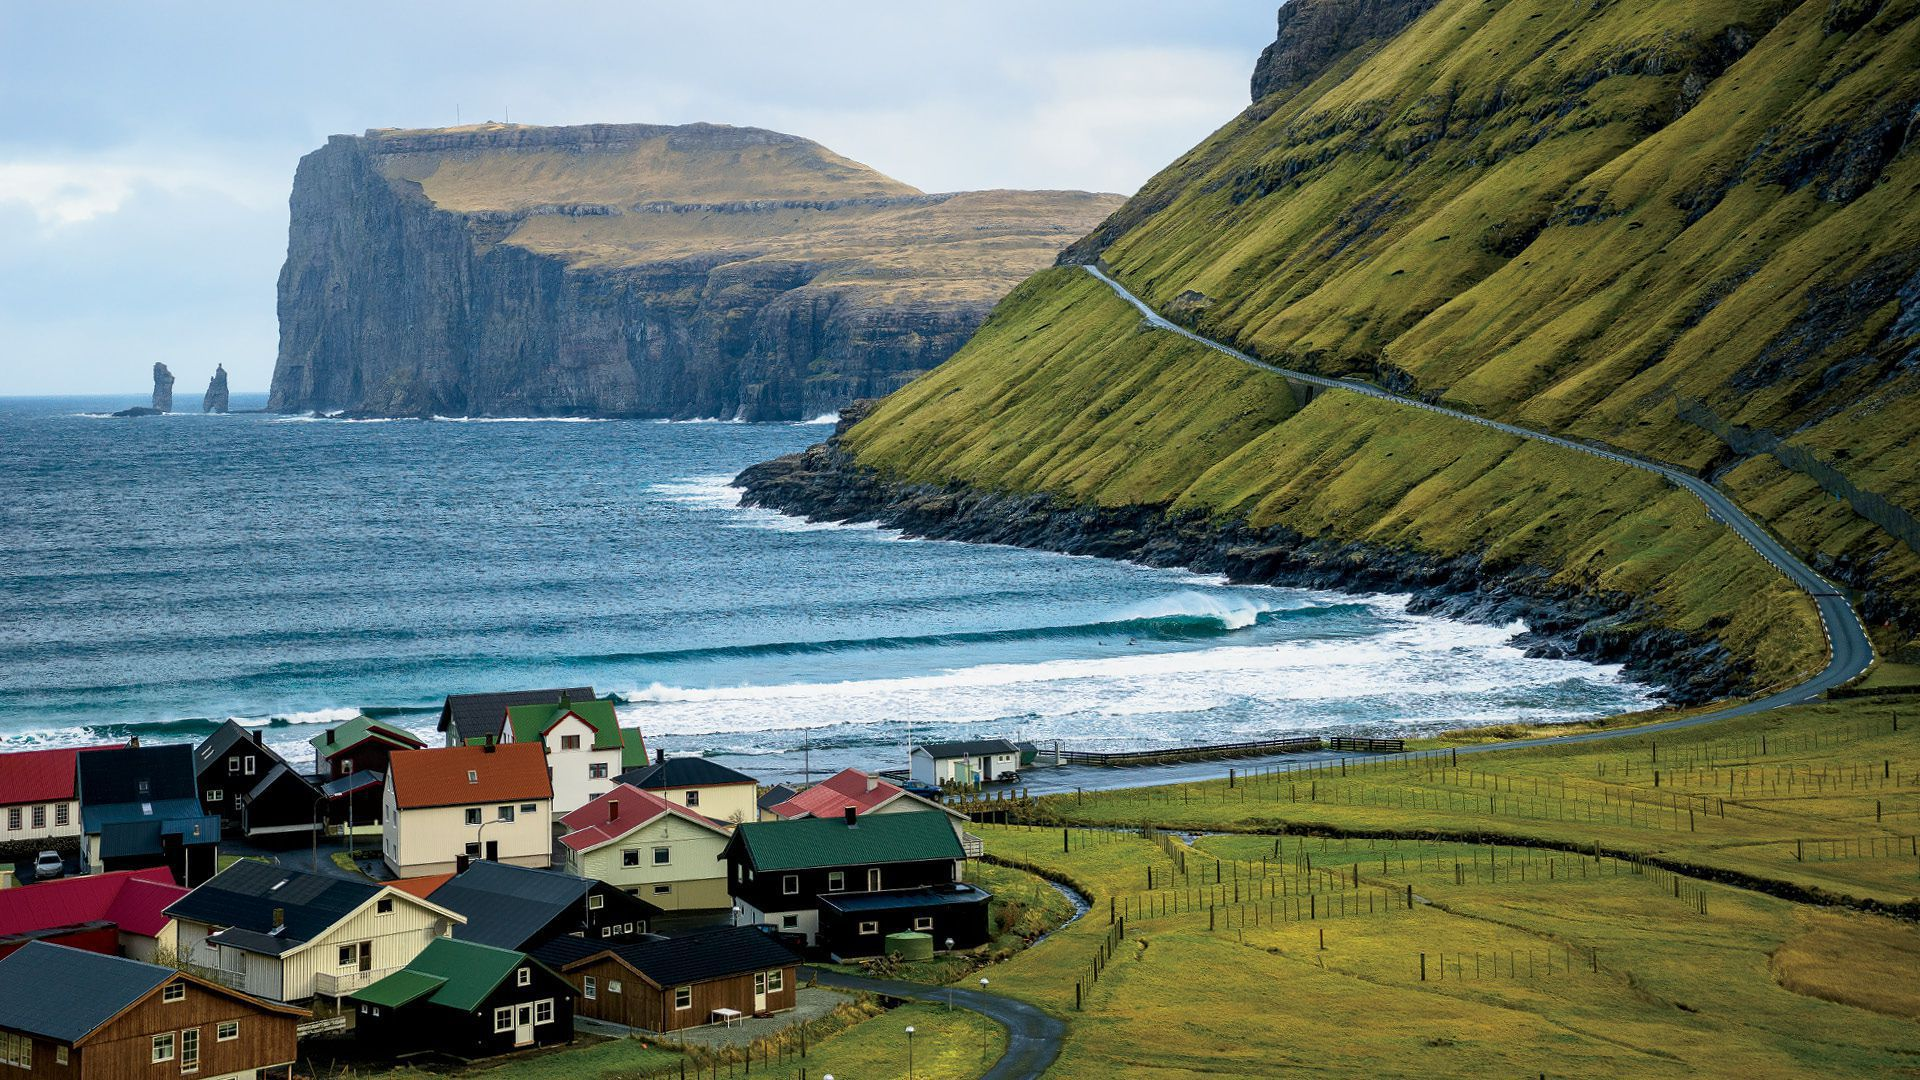 Faroe islands wallpapers images photos pictures backgrounds - Wallpaper photos ...